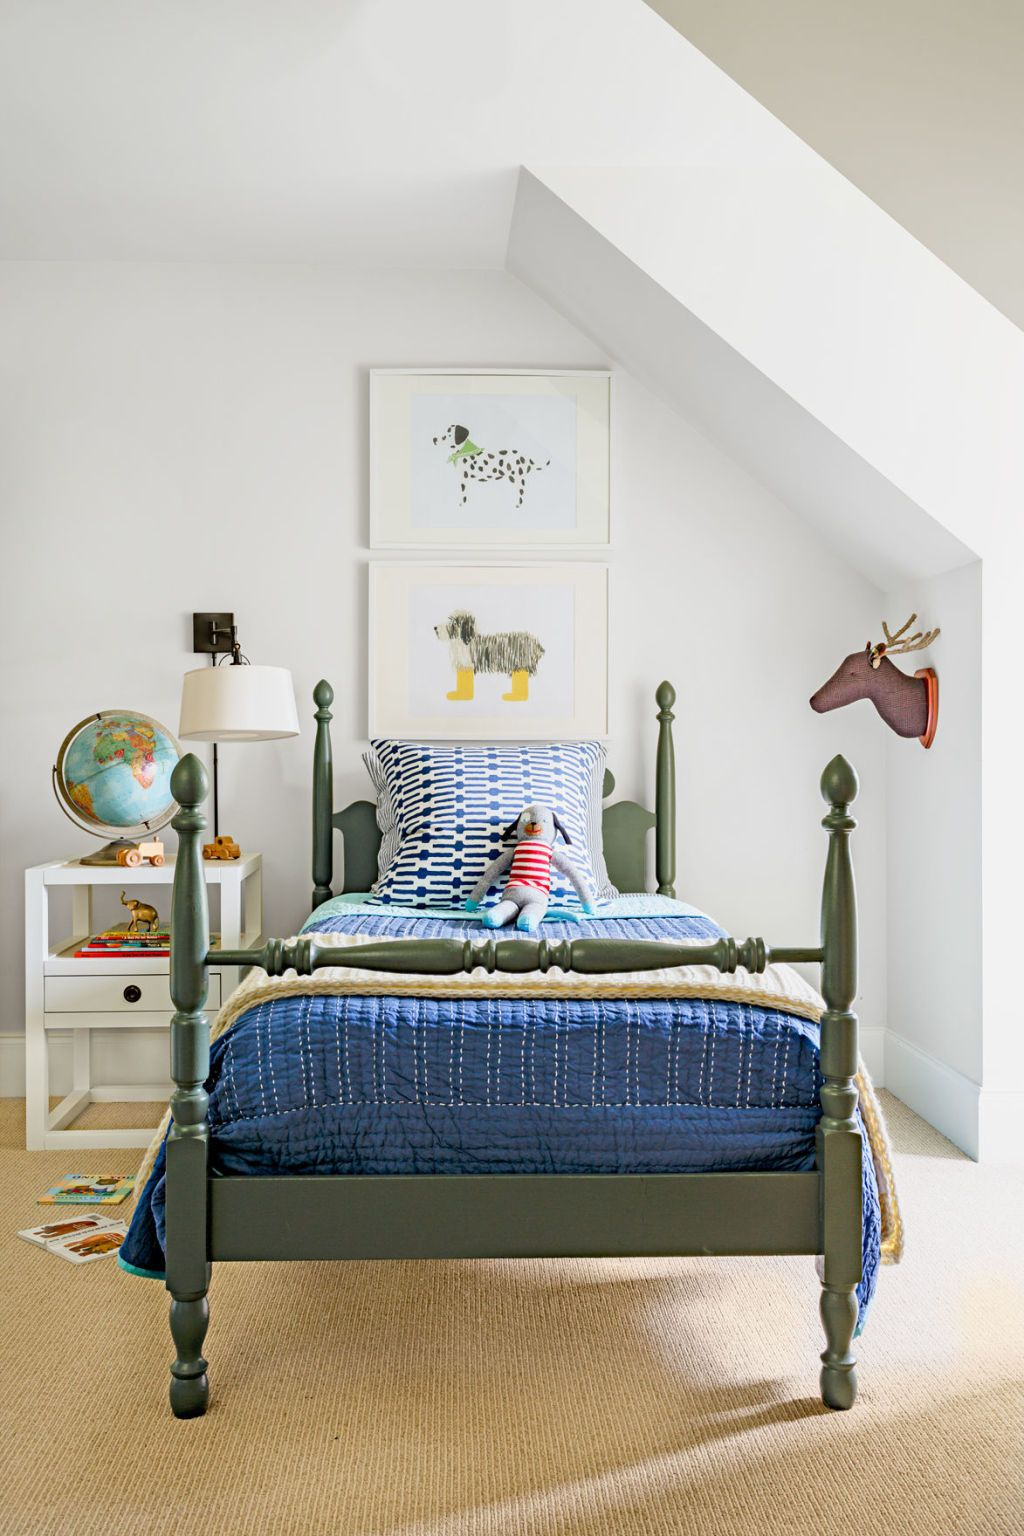 Boy haircuts 7 year old  kidsu rooms youull both love  kids rooms room and bedrooms